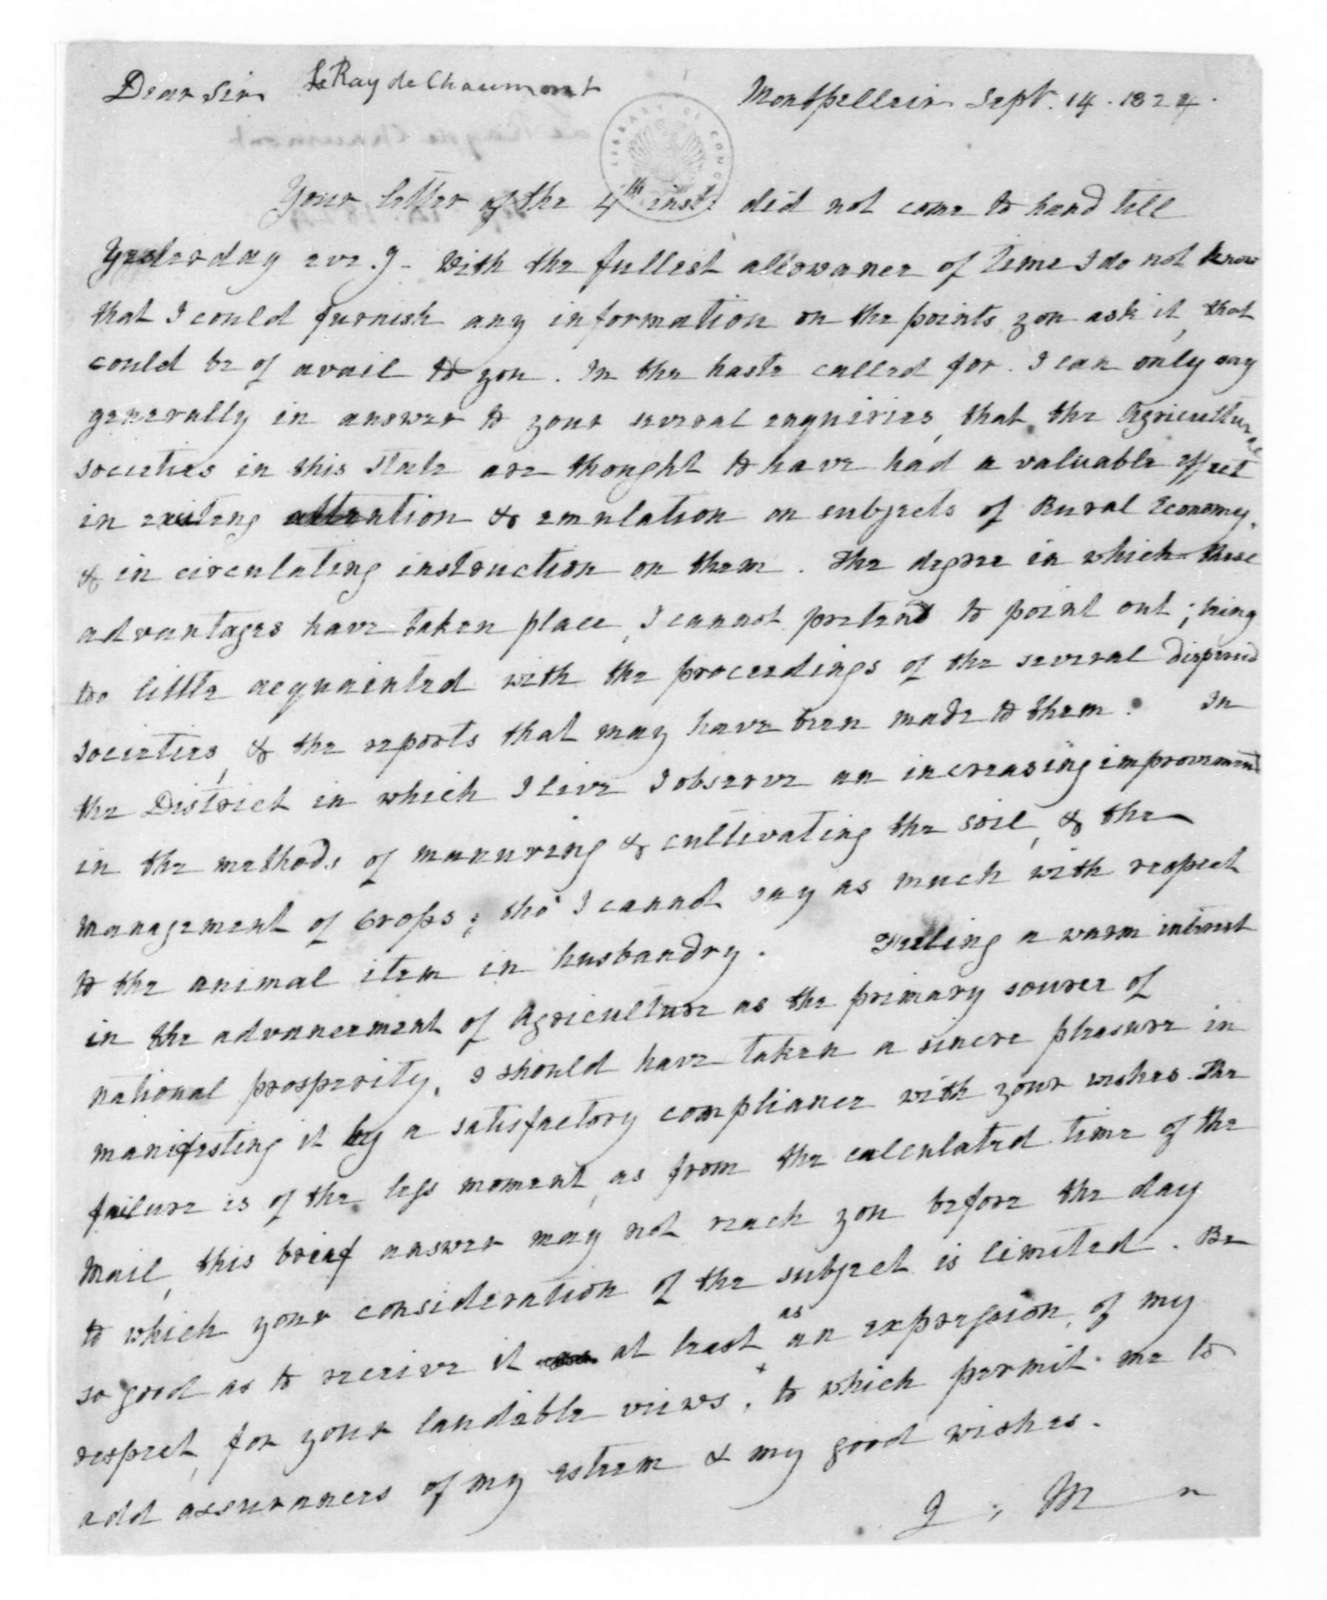 James Madison to Le Ray de Chaumont, September 14, 1824. With Copy.